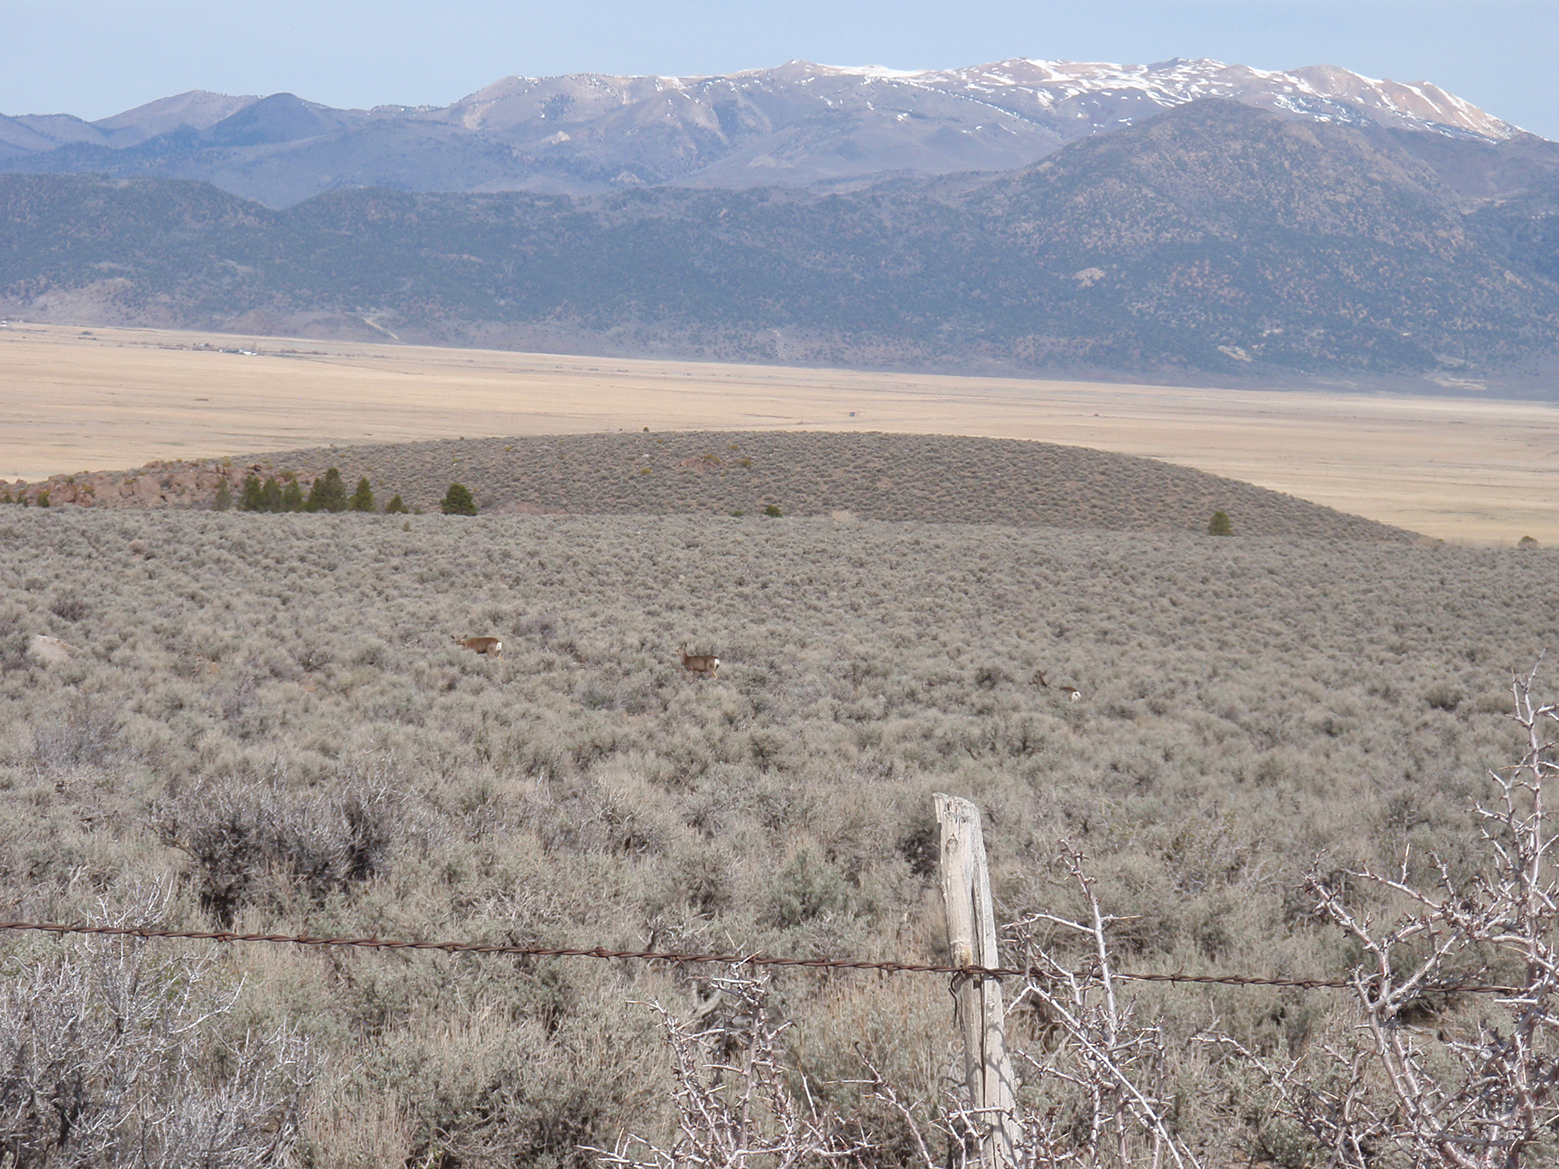 Mule deer walk among the sagebrush sea at Sceirine Point Ranch